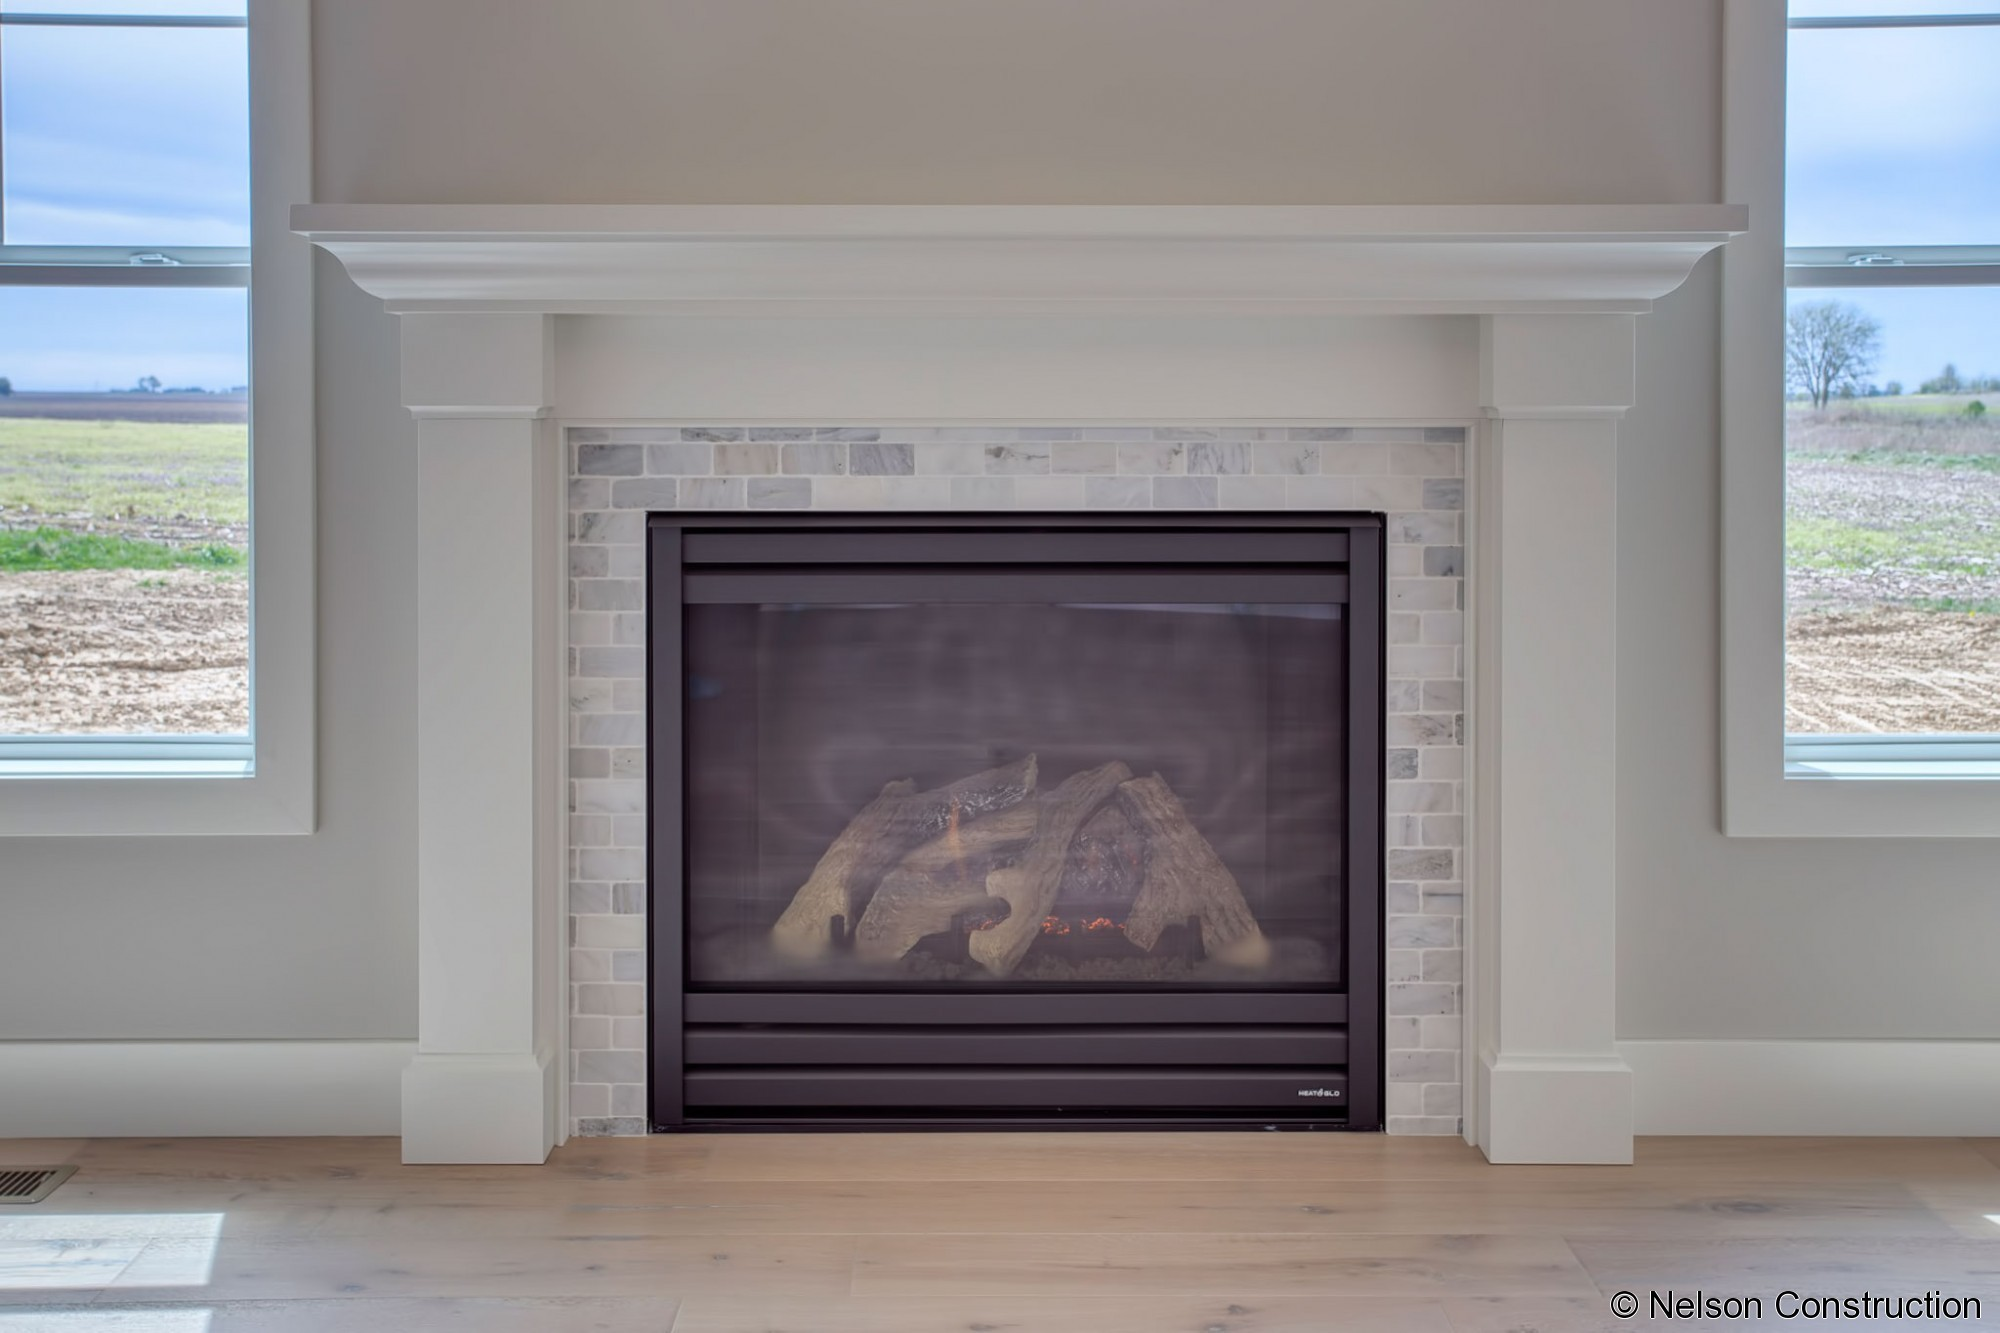 The fireplace of this Cherrydale plan home features a farmhouse-styled mantle surround with tumbled marble tile.